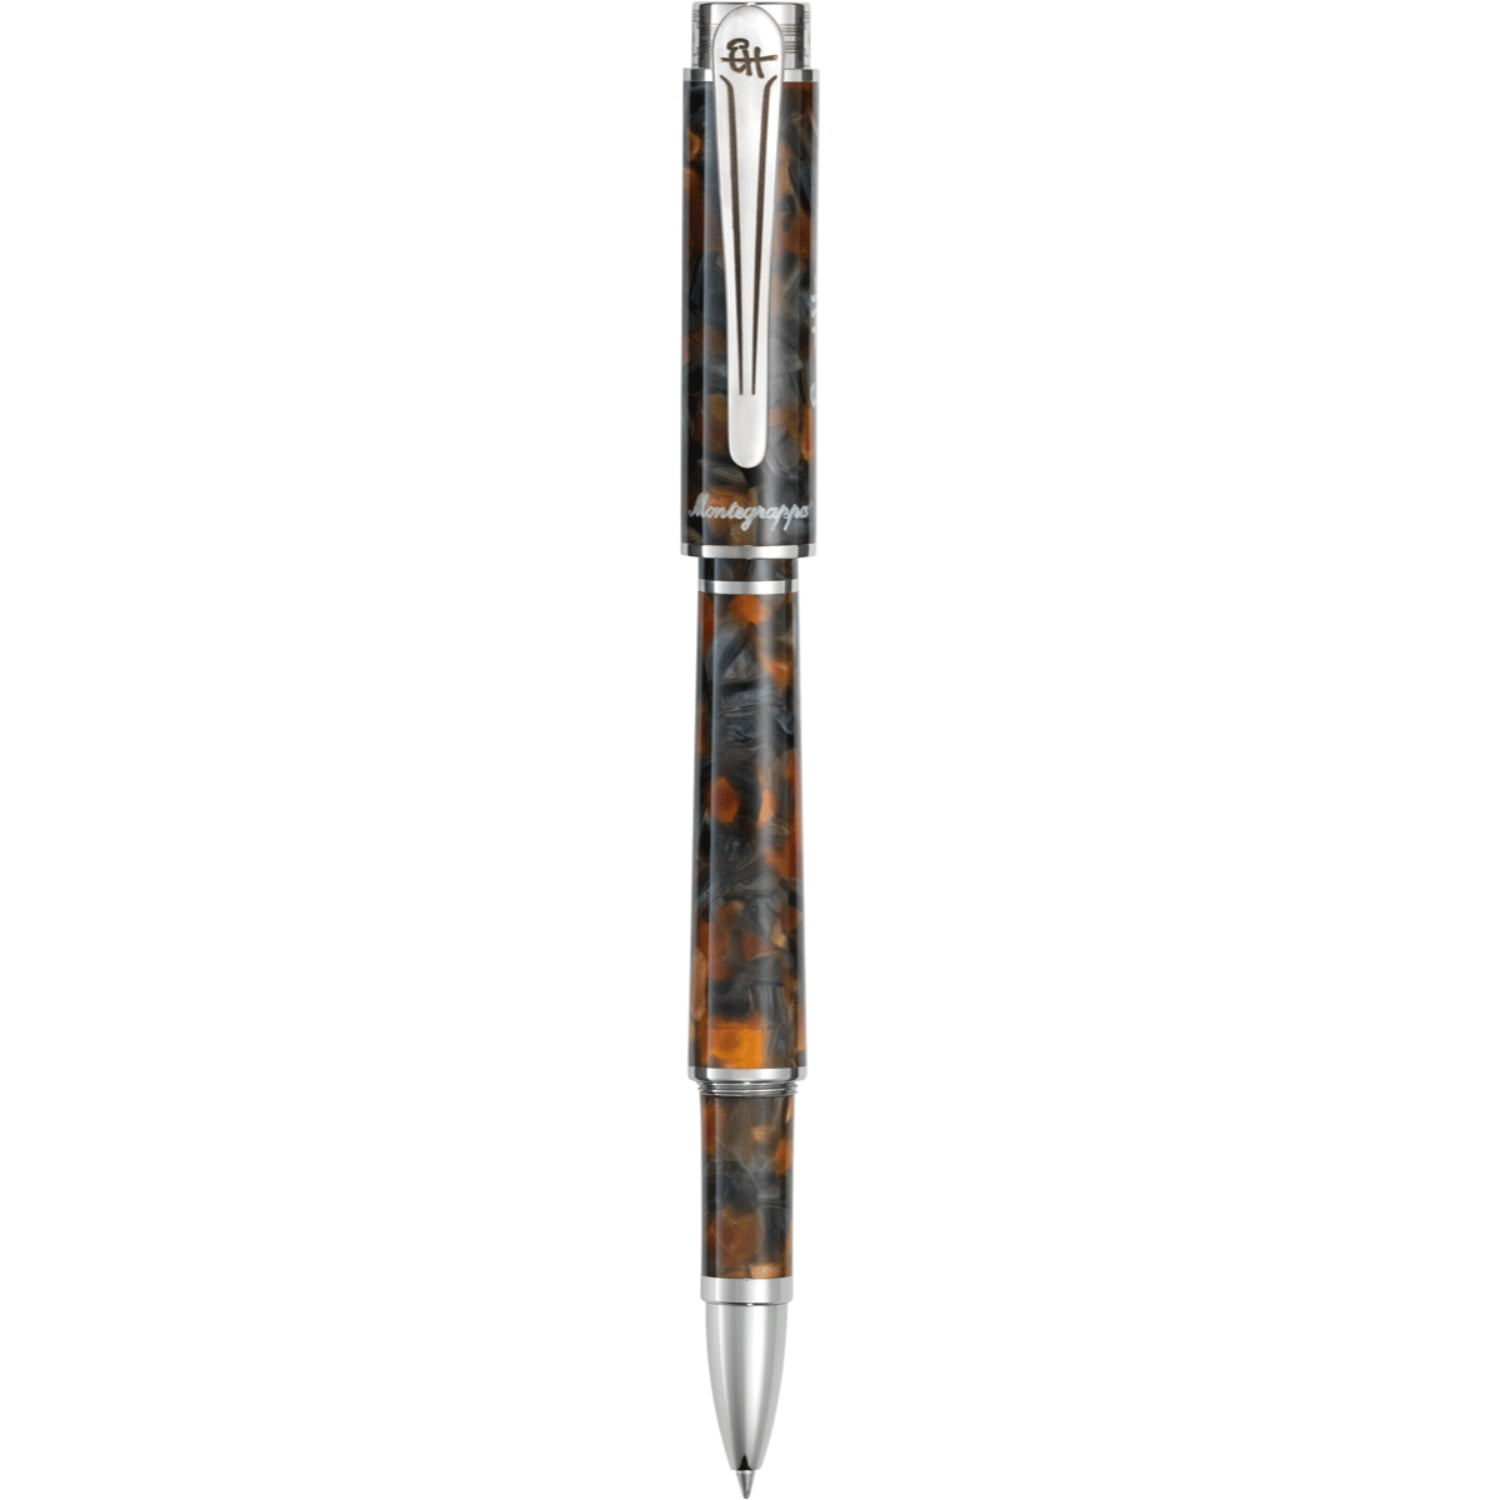 Hemingway Novel Rollerball Pen, Amber Grey